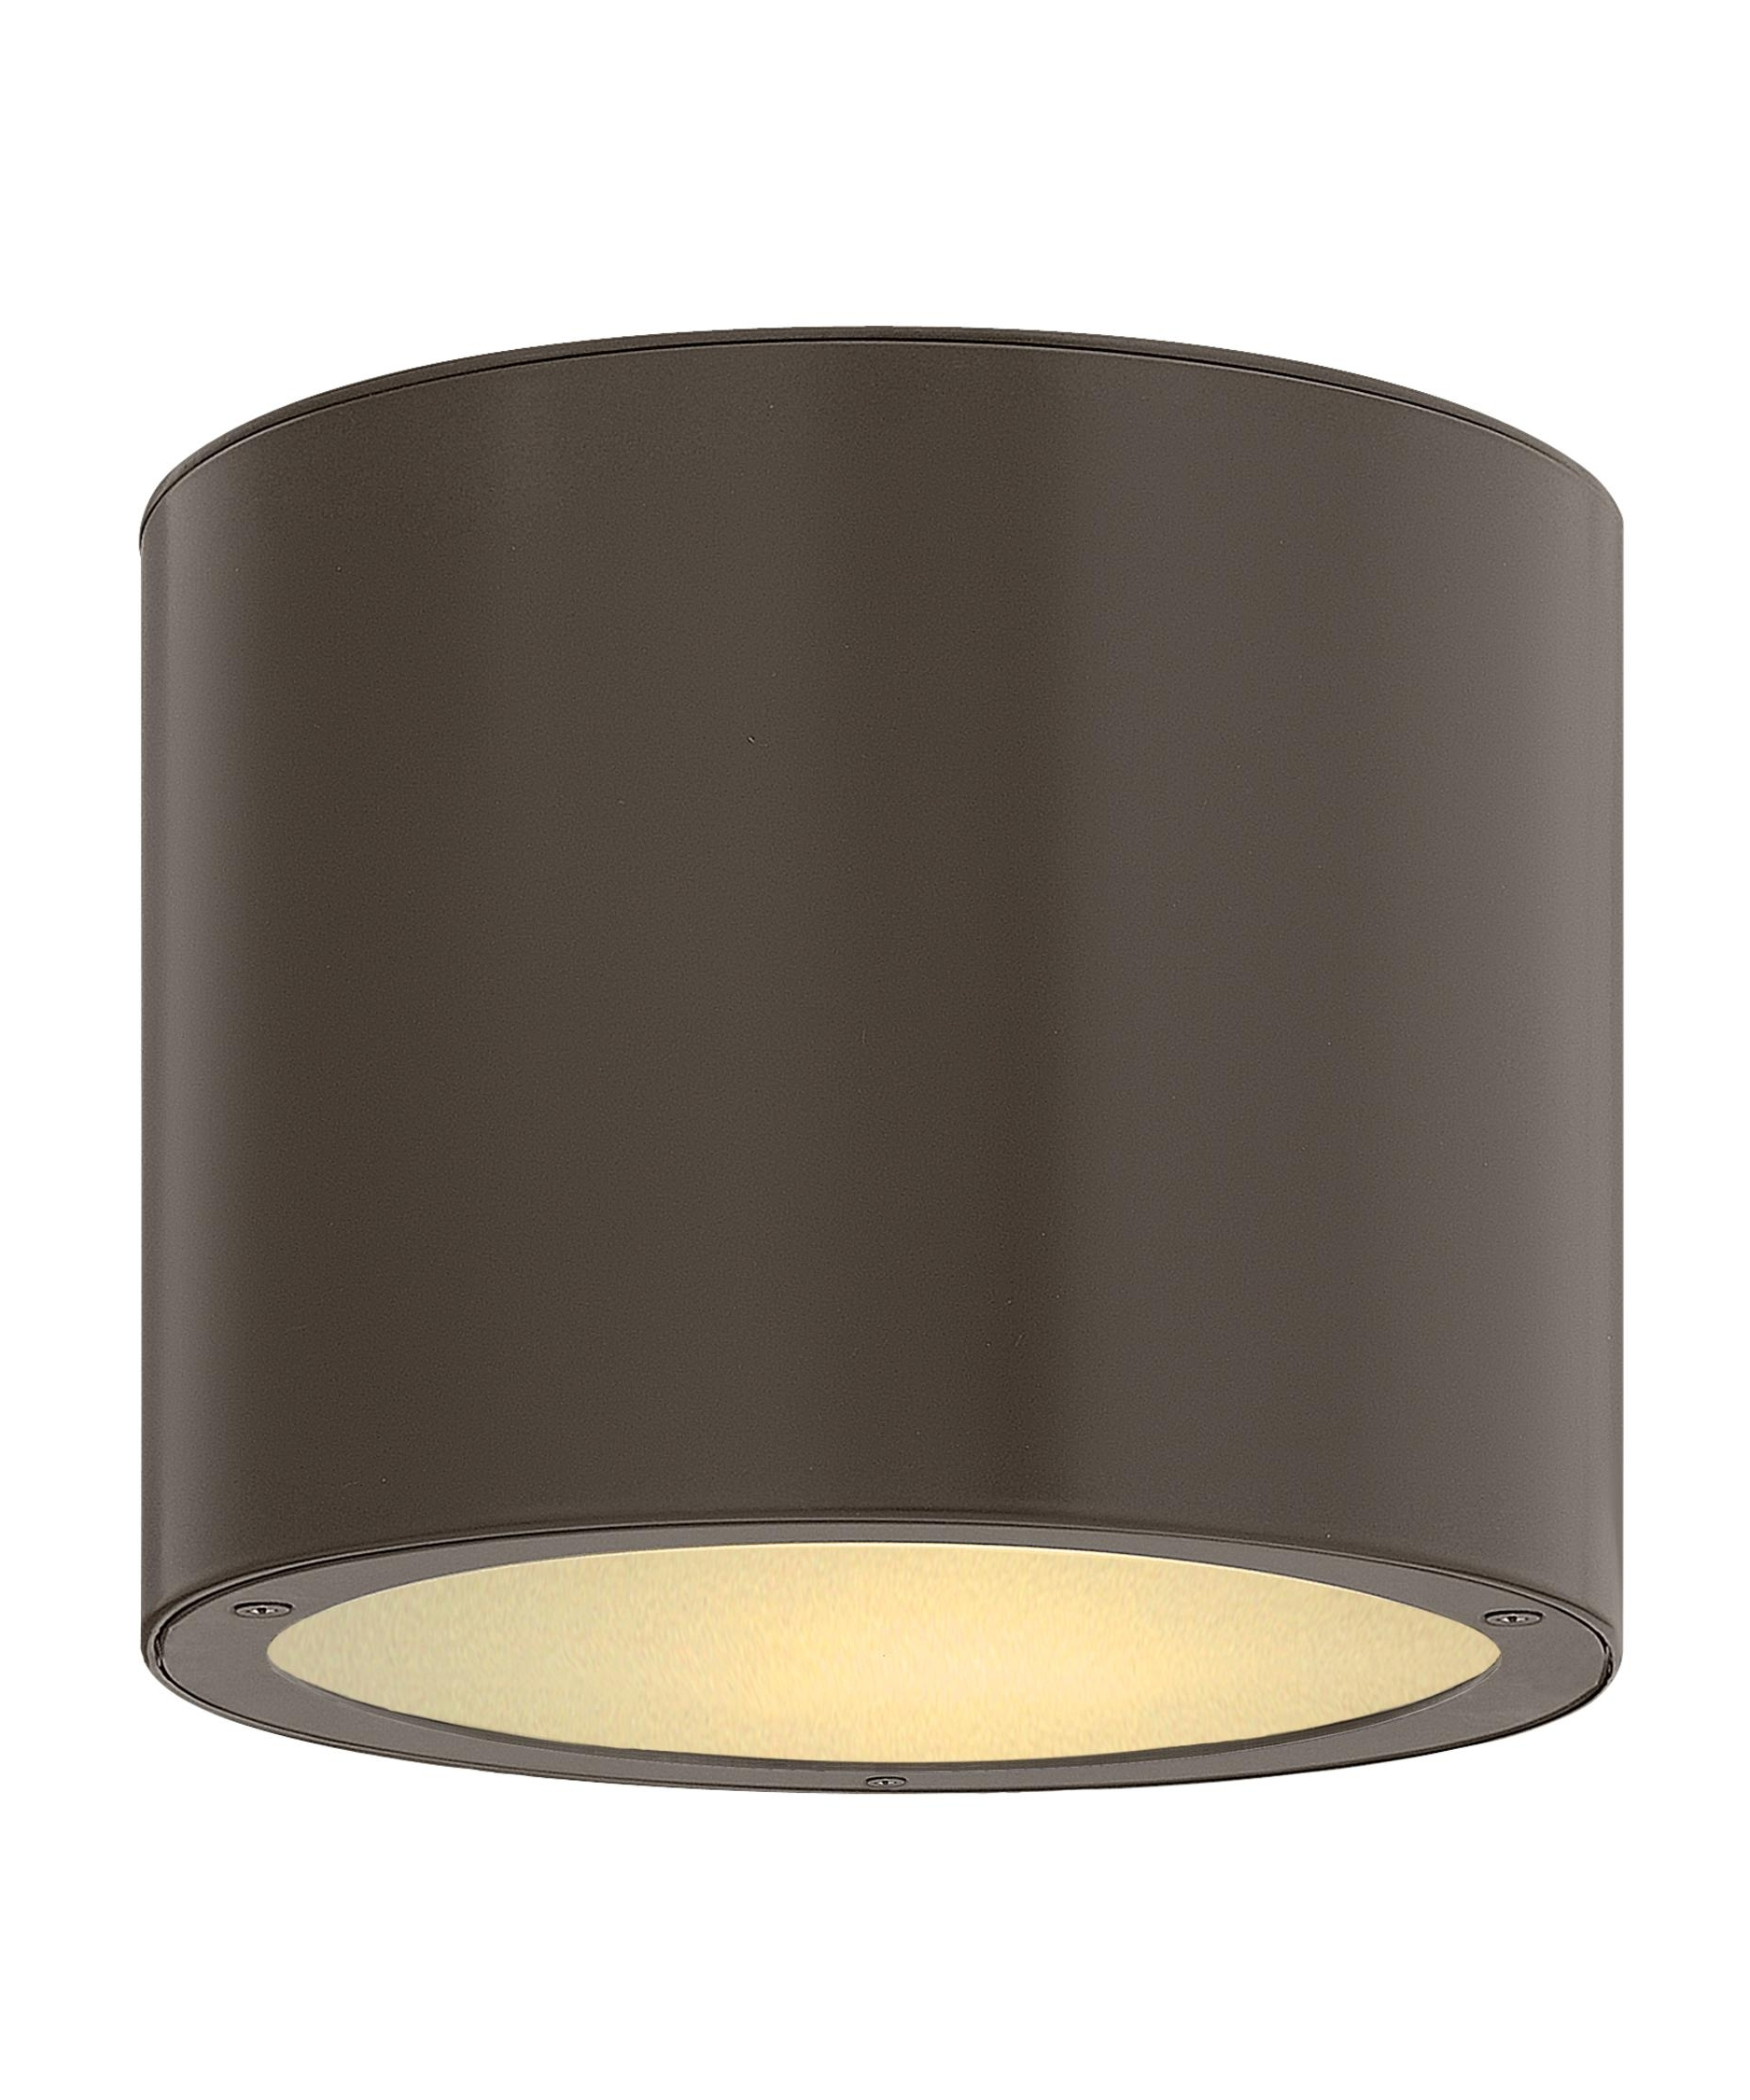 Hinkley Lighting 1663 Luna 8 Inch Wide 1 Light Outdoor Flush Mount Intended For Well Liked Outdoor Ceiling Lights (View 5 of 20)